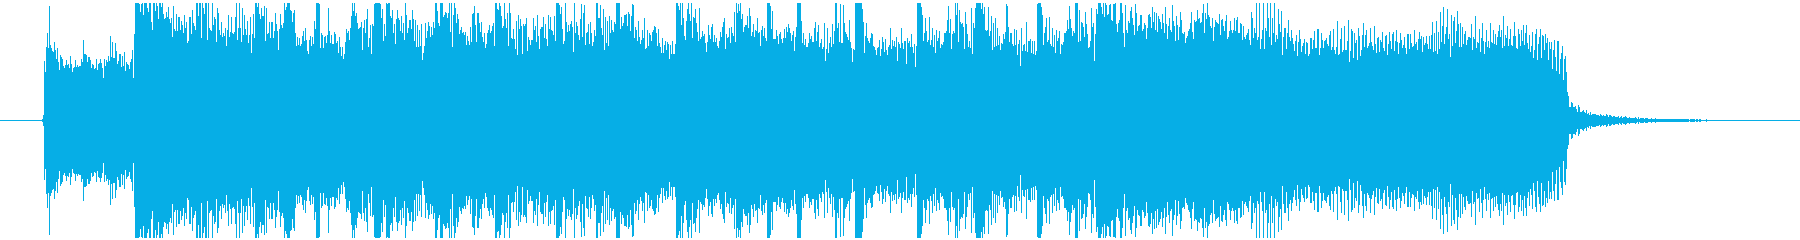 Fight To Live 15 sec's reproduced waveform